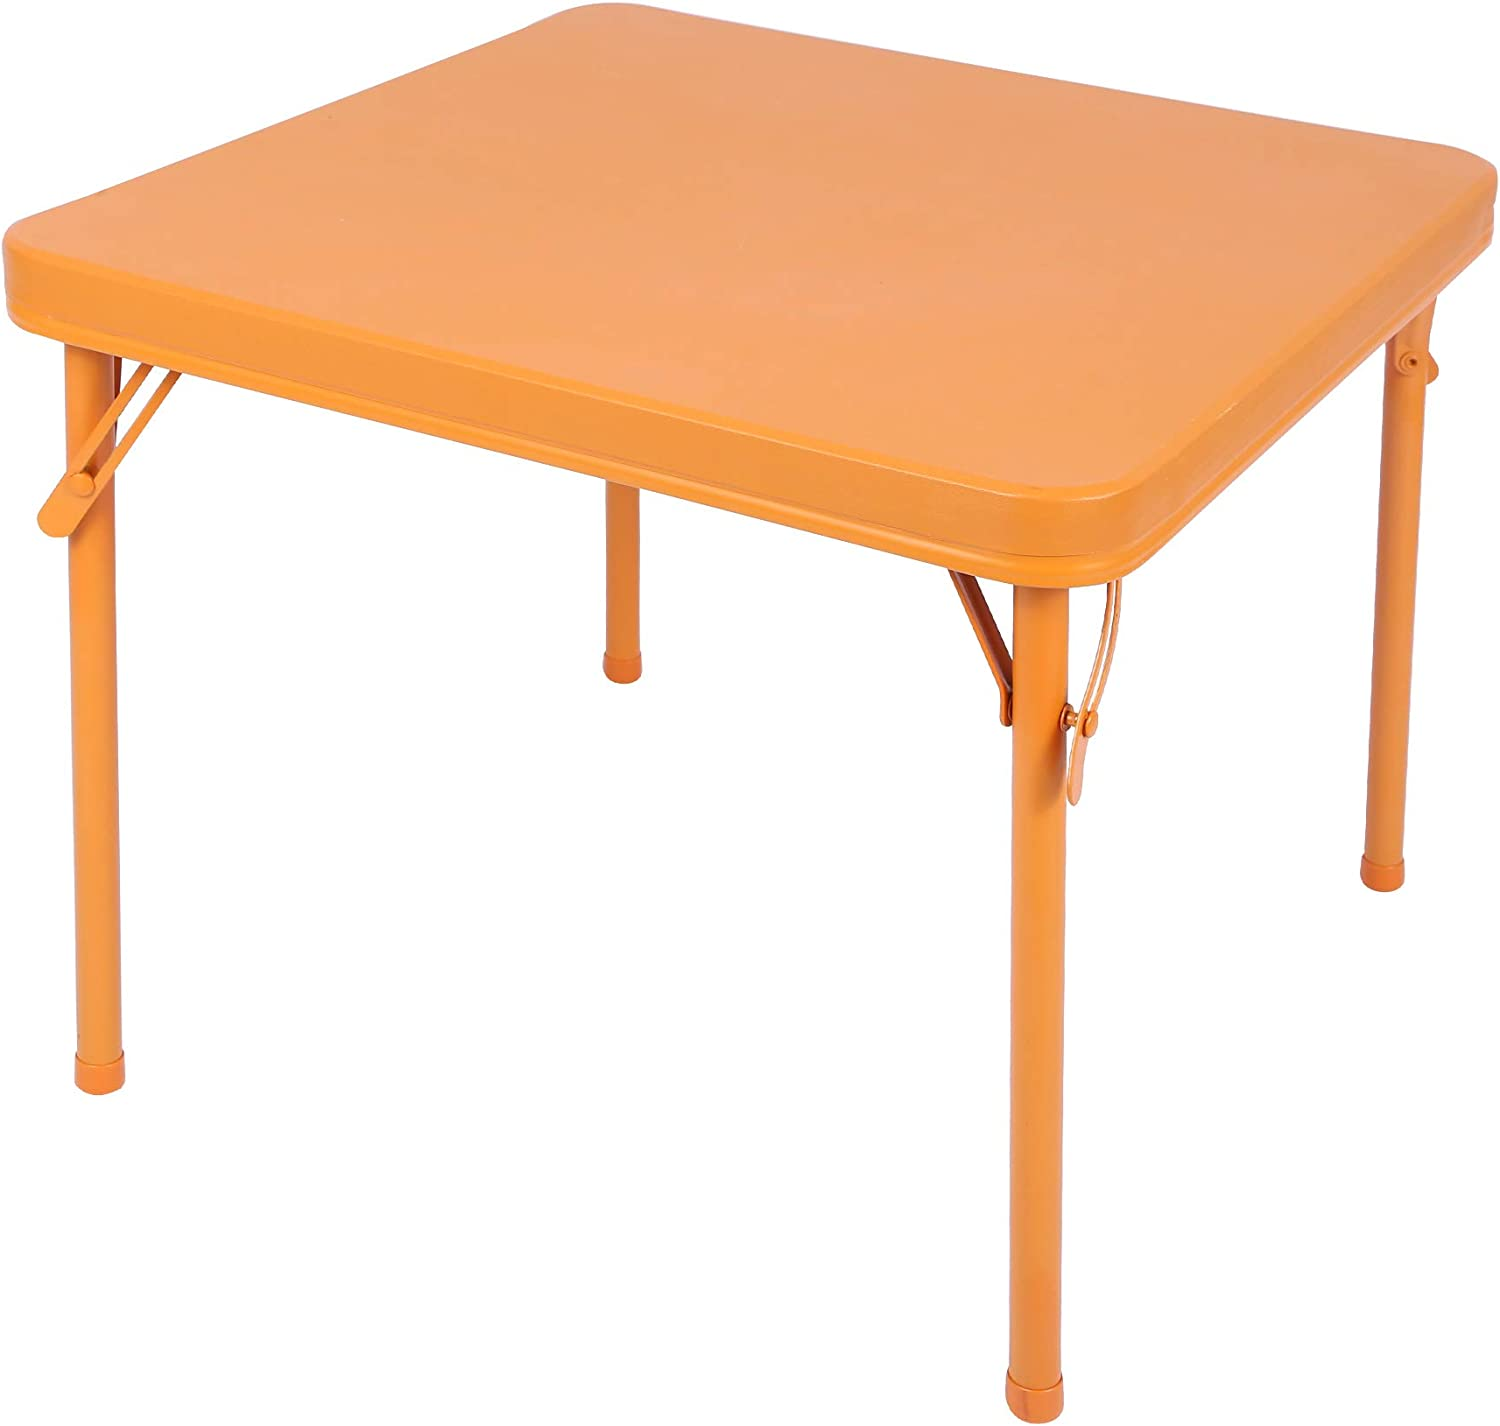 RedSwing Kids Folding Table, Square Card Table for Toddler Children Playing Dining Drawing